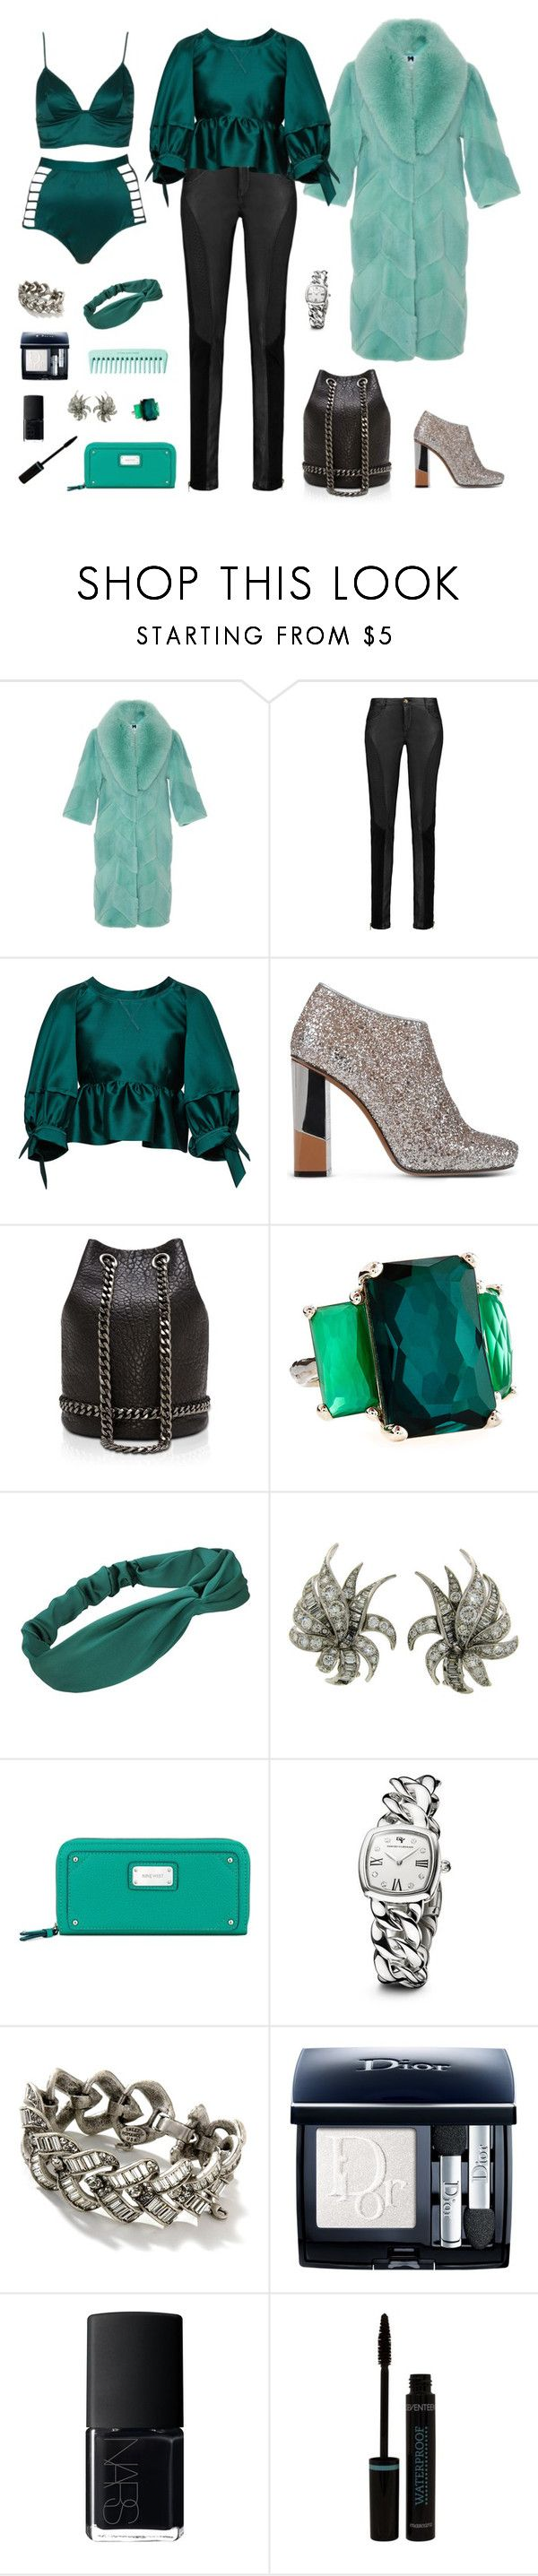 """""""Chevron Outfit Only Contest: Chevron Coat"""" by tippi-h ❤ liked on Polyvore featuring Blumarine, Emilio Pucci, Aquilano.Rimondi, L'Autre Chose, Vince Camuto, Ippolita, Chaumet, Nine West, David Yurman and Sweet Romance"""